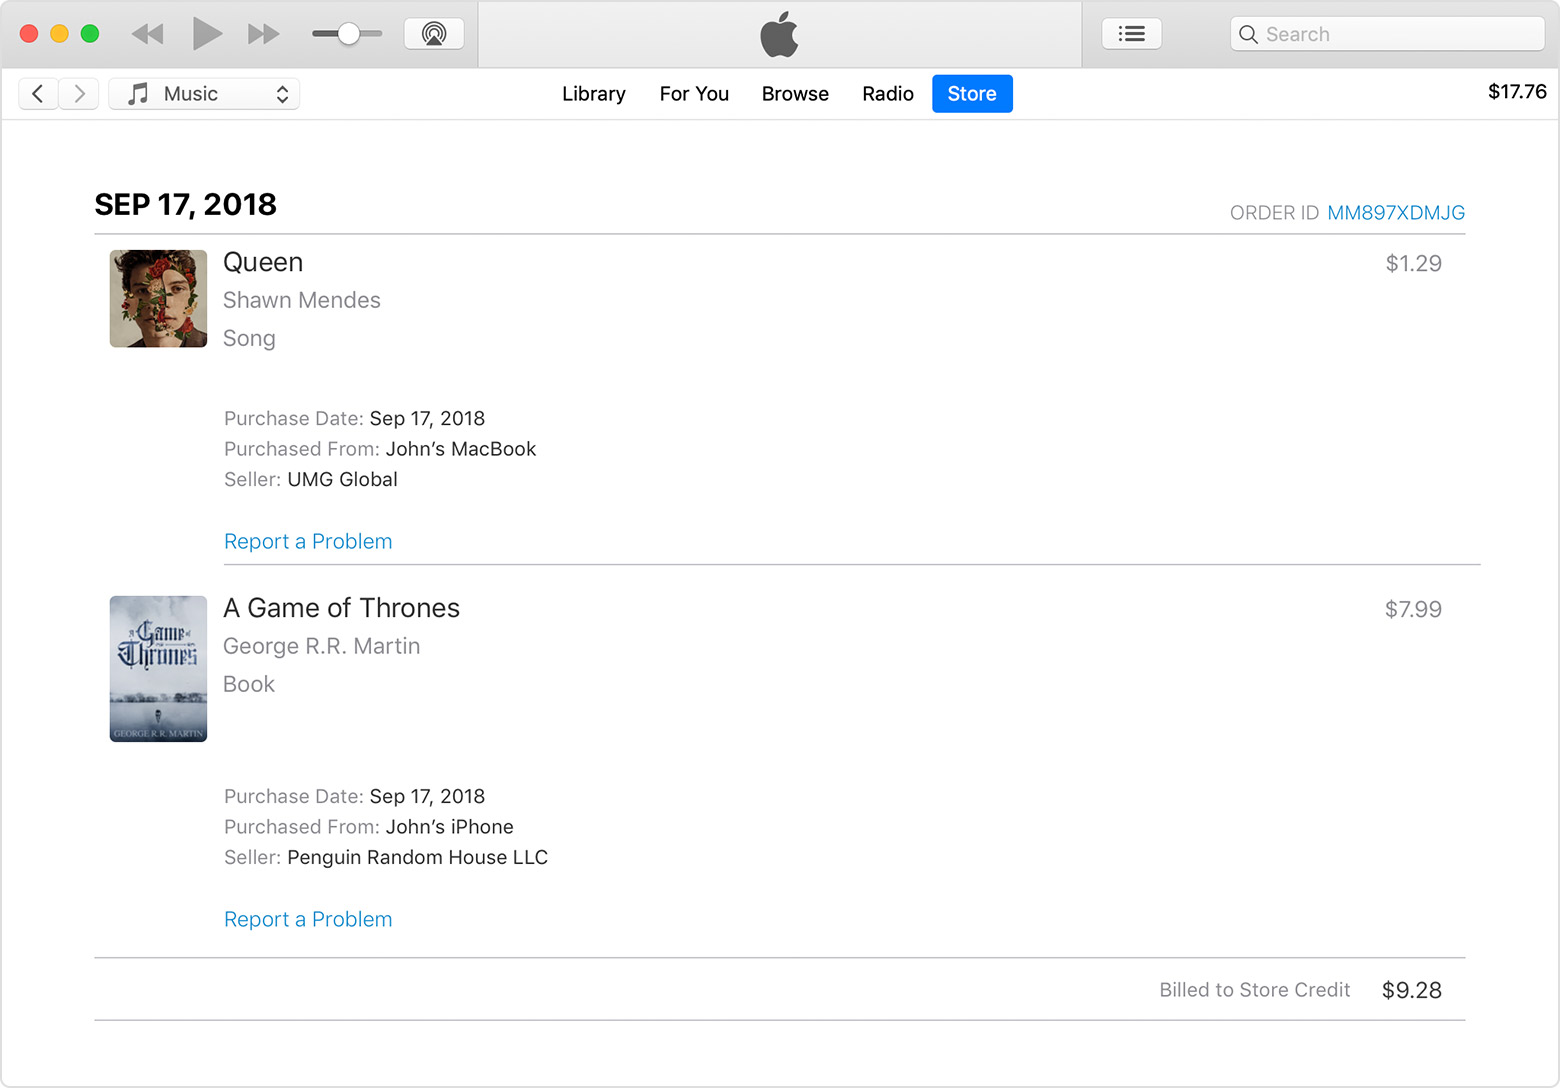 An iTunes windows showing more information about the items in the sample invoice.